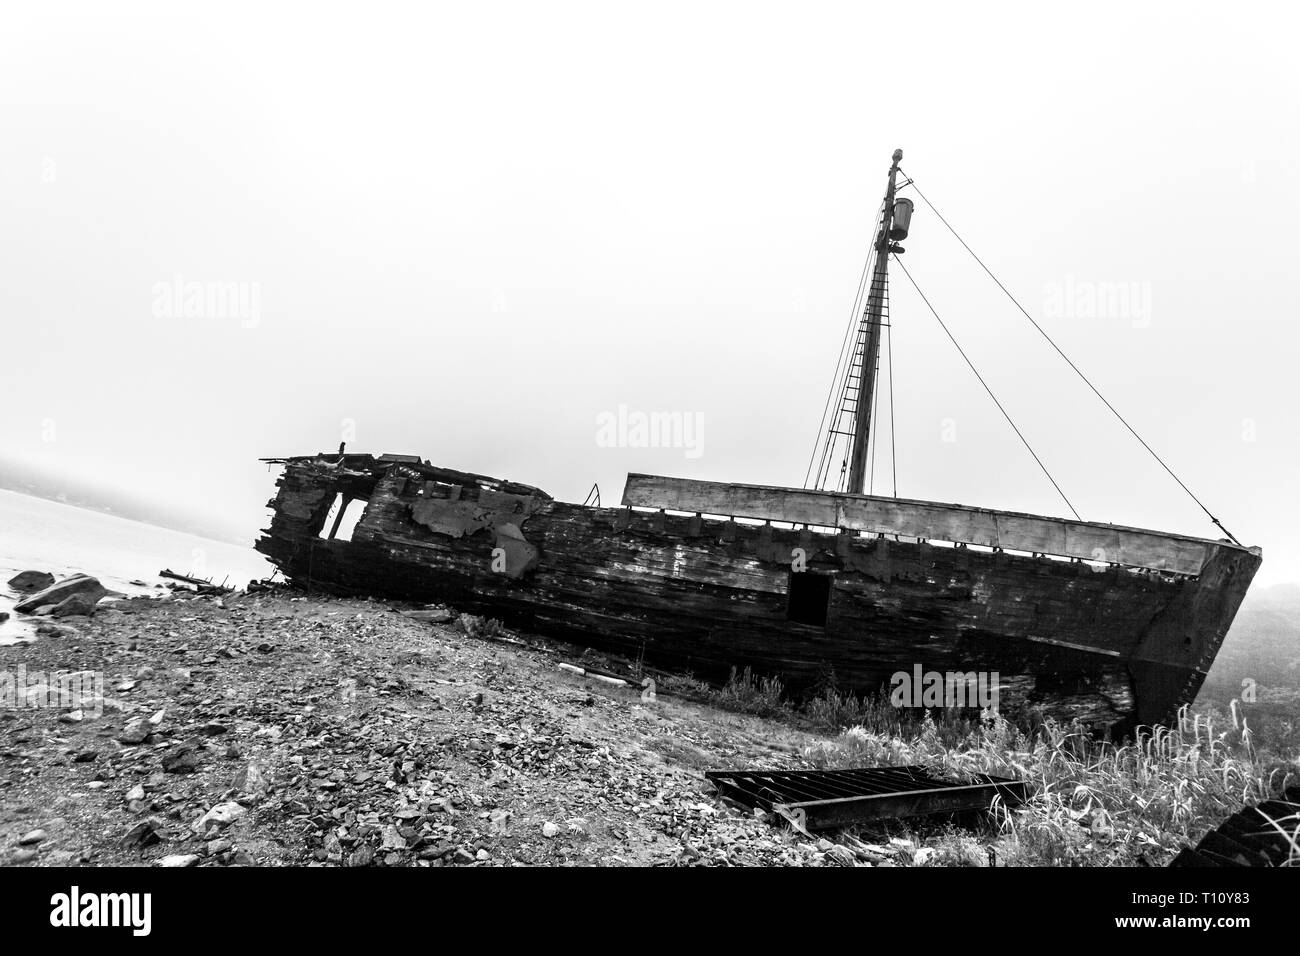 Old wooden wrecked ship in the morning fog. Black and white image - Stock Image